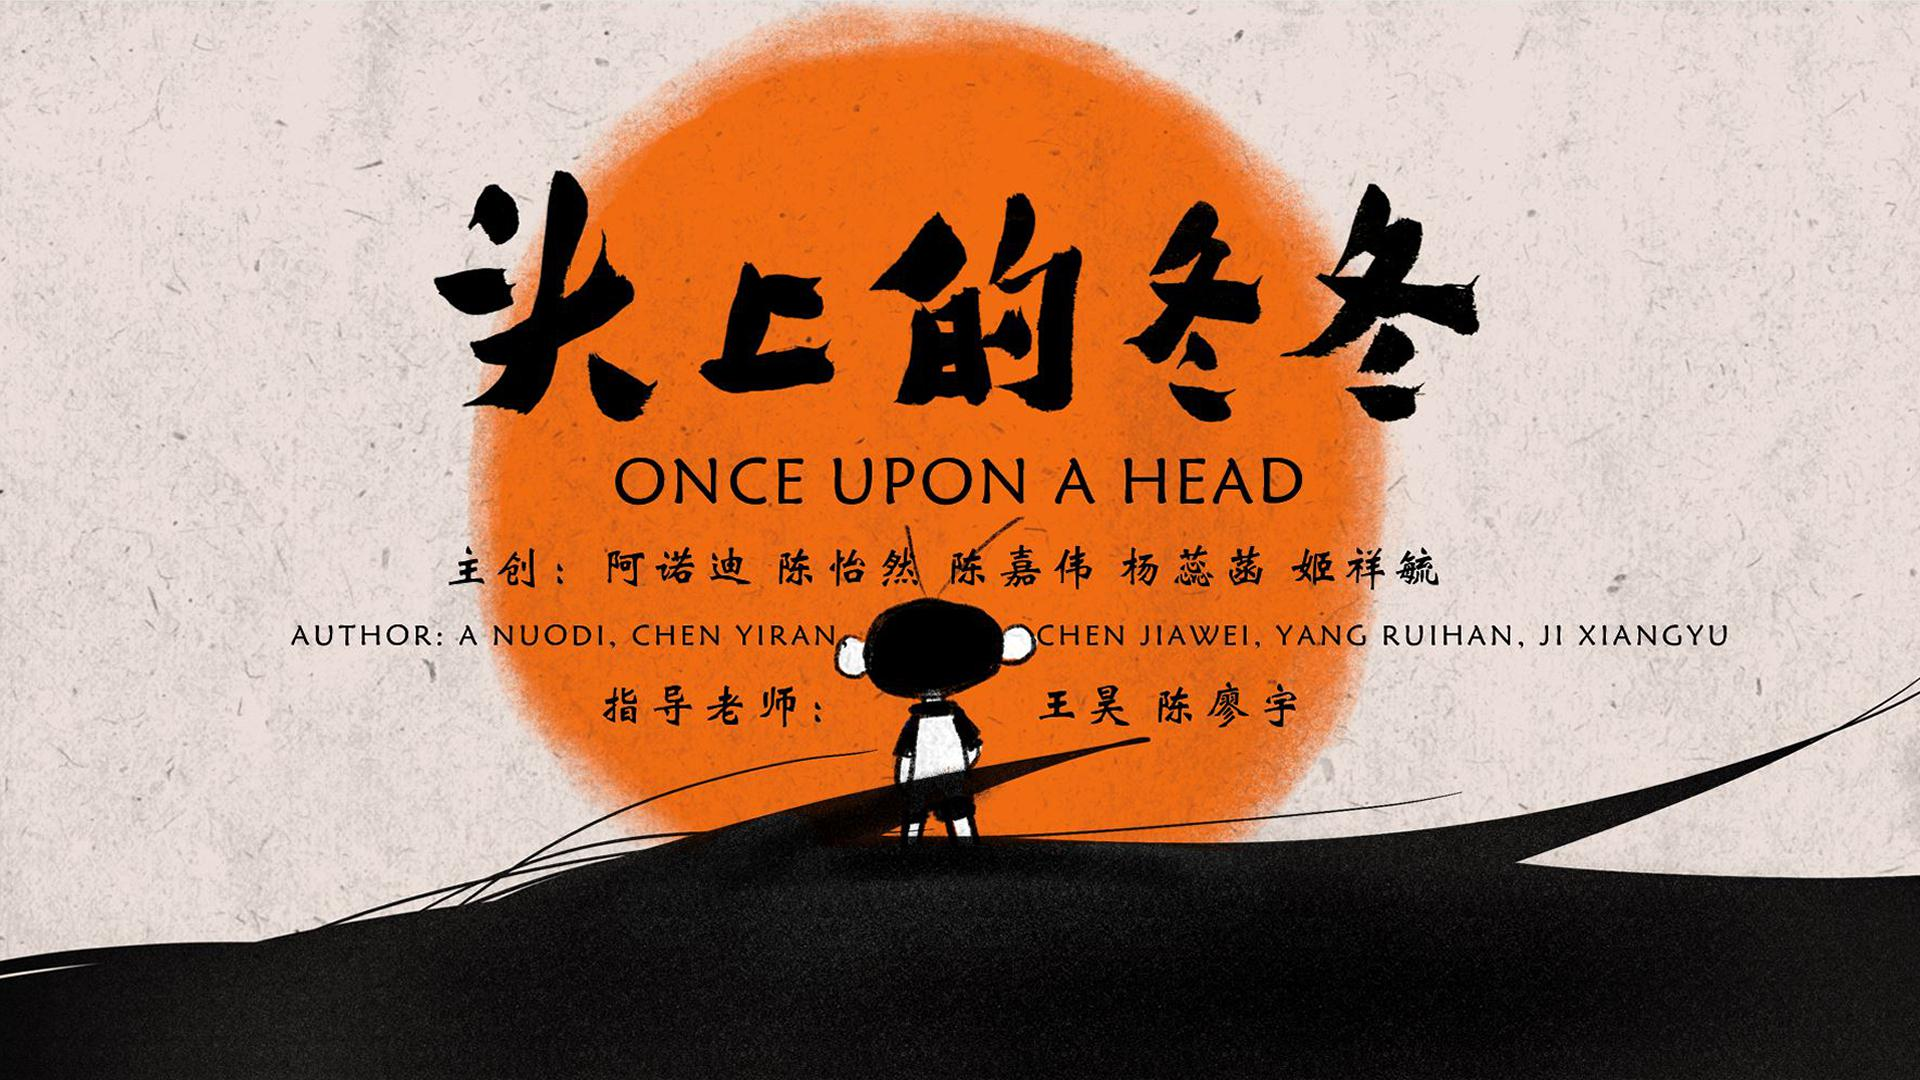 Once upon a head